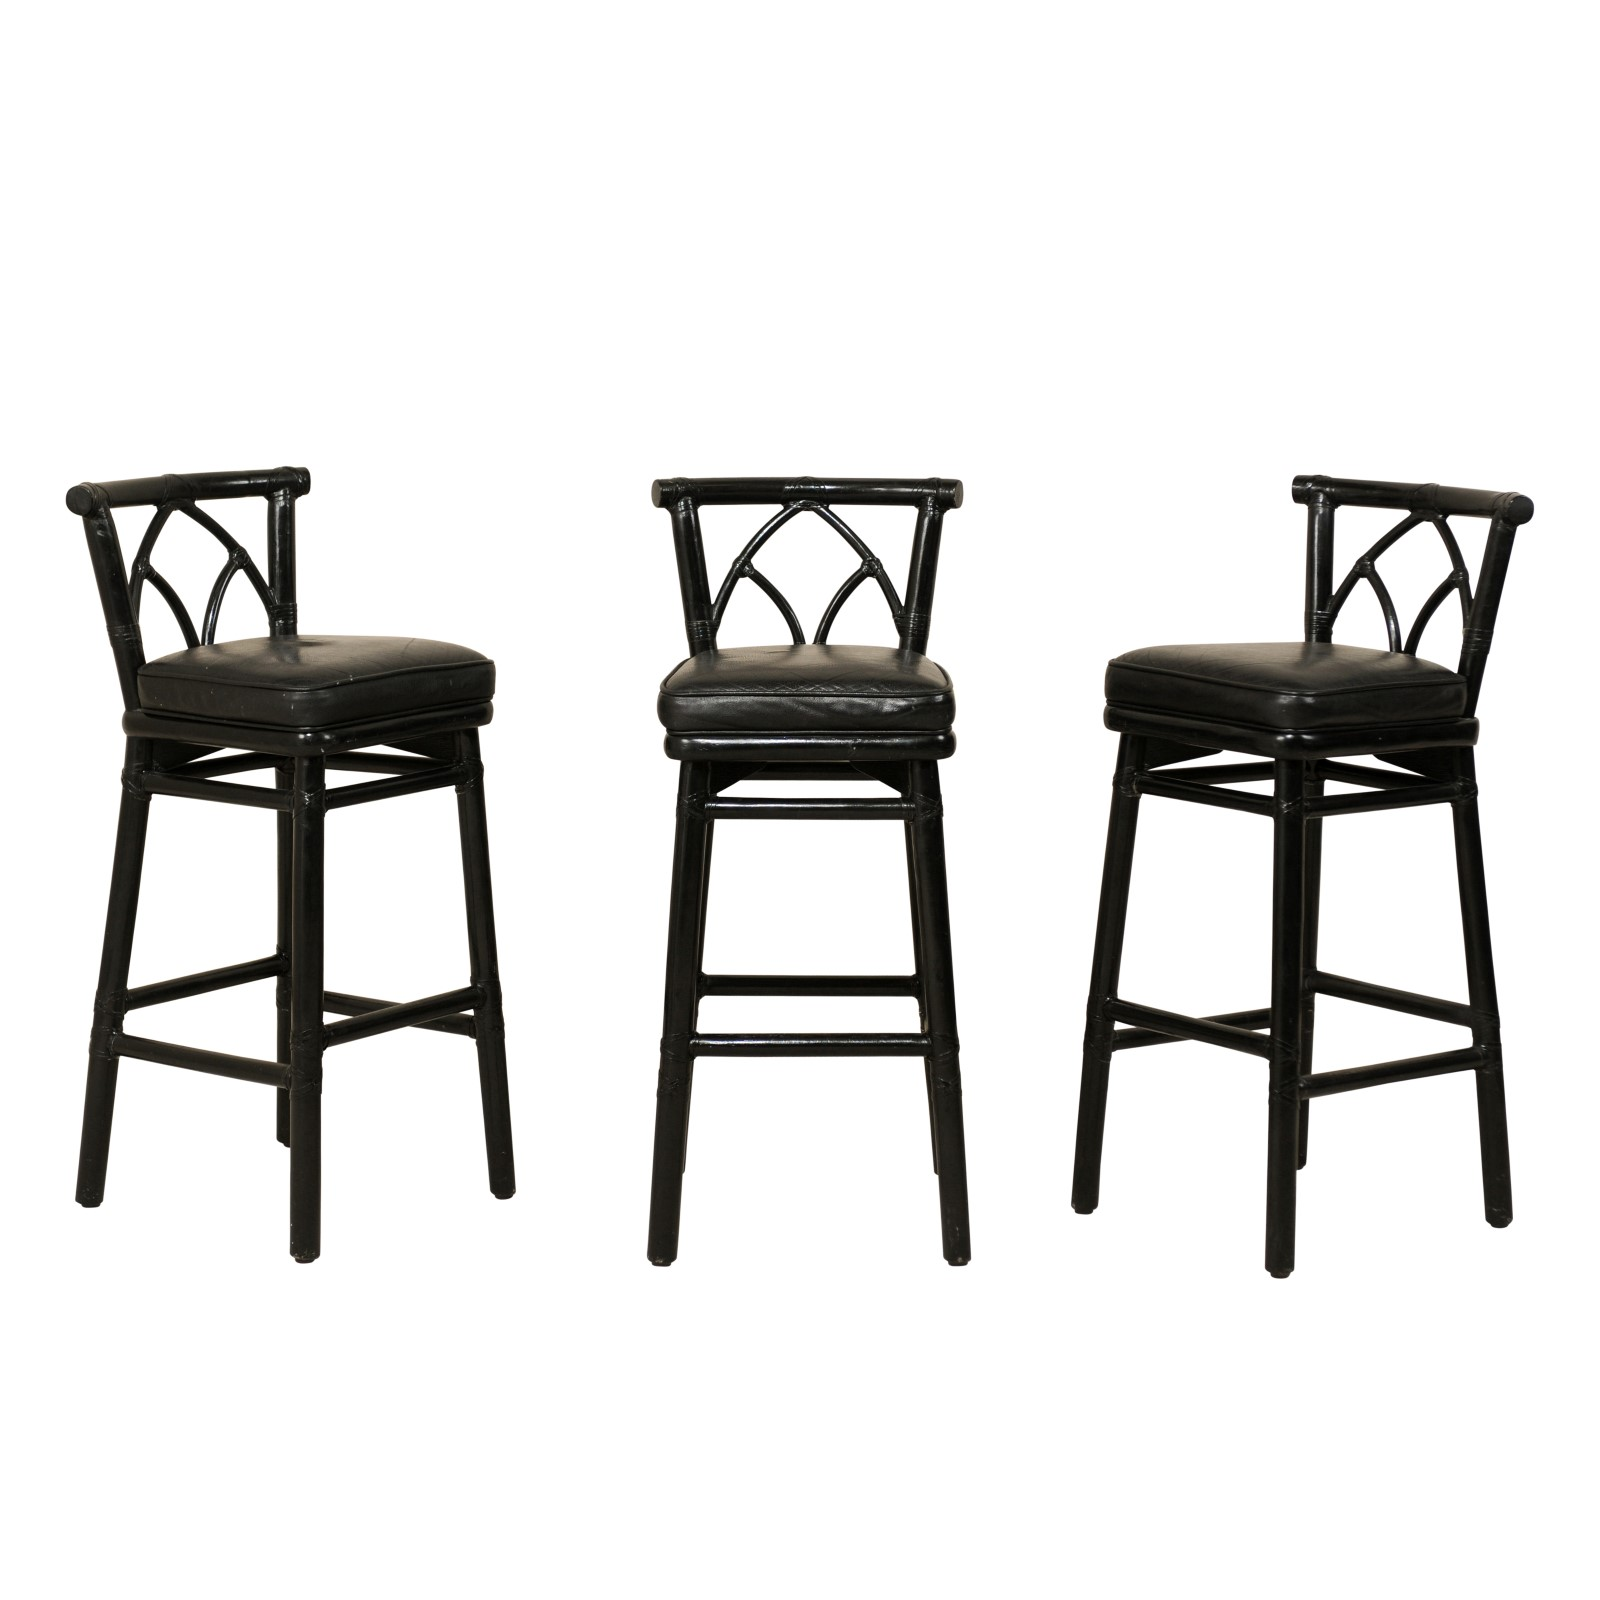 Swedish Bar Stools Set Of Mcguire Rattan Bar Stools 119 A Tyner Antiques